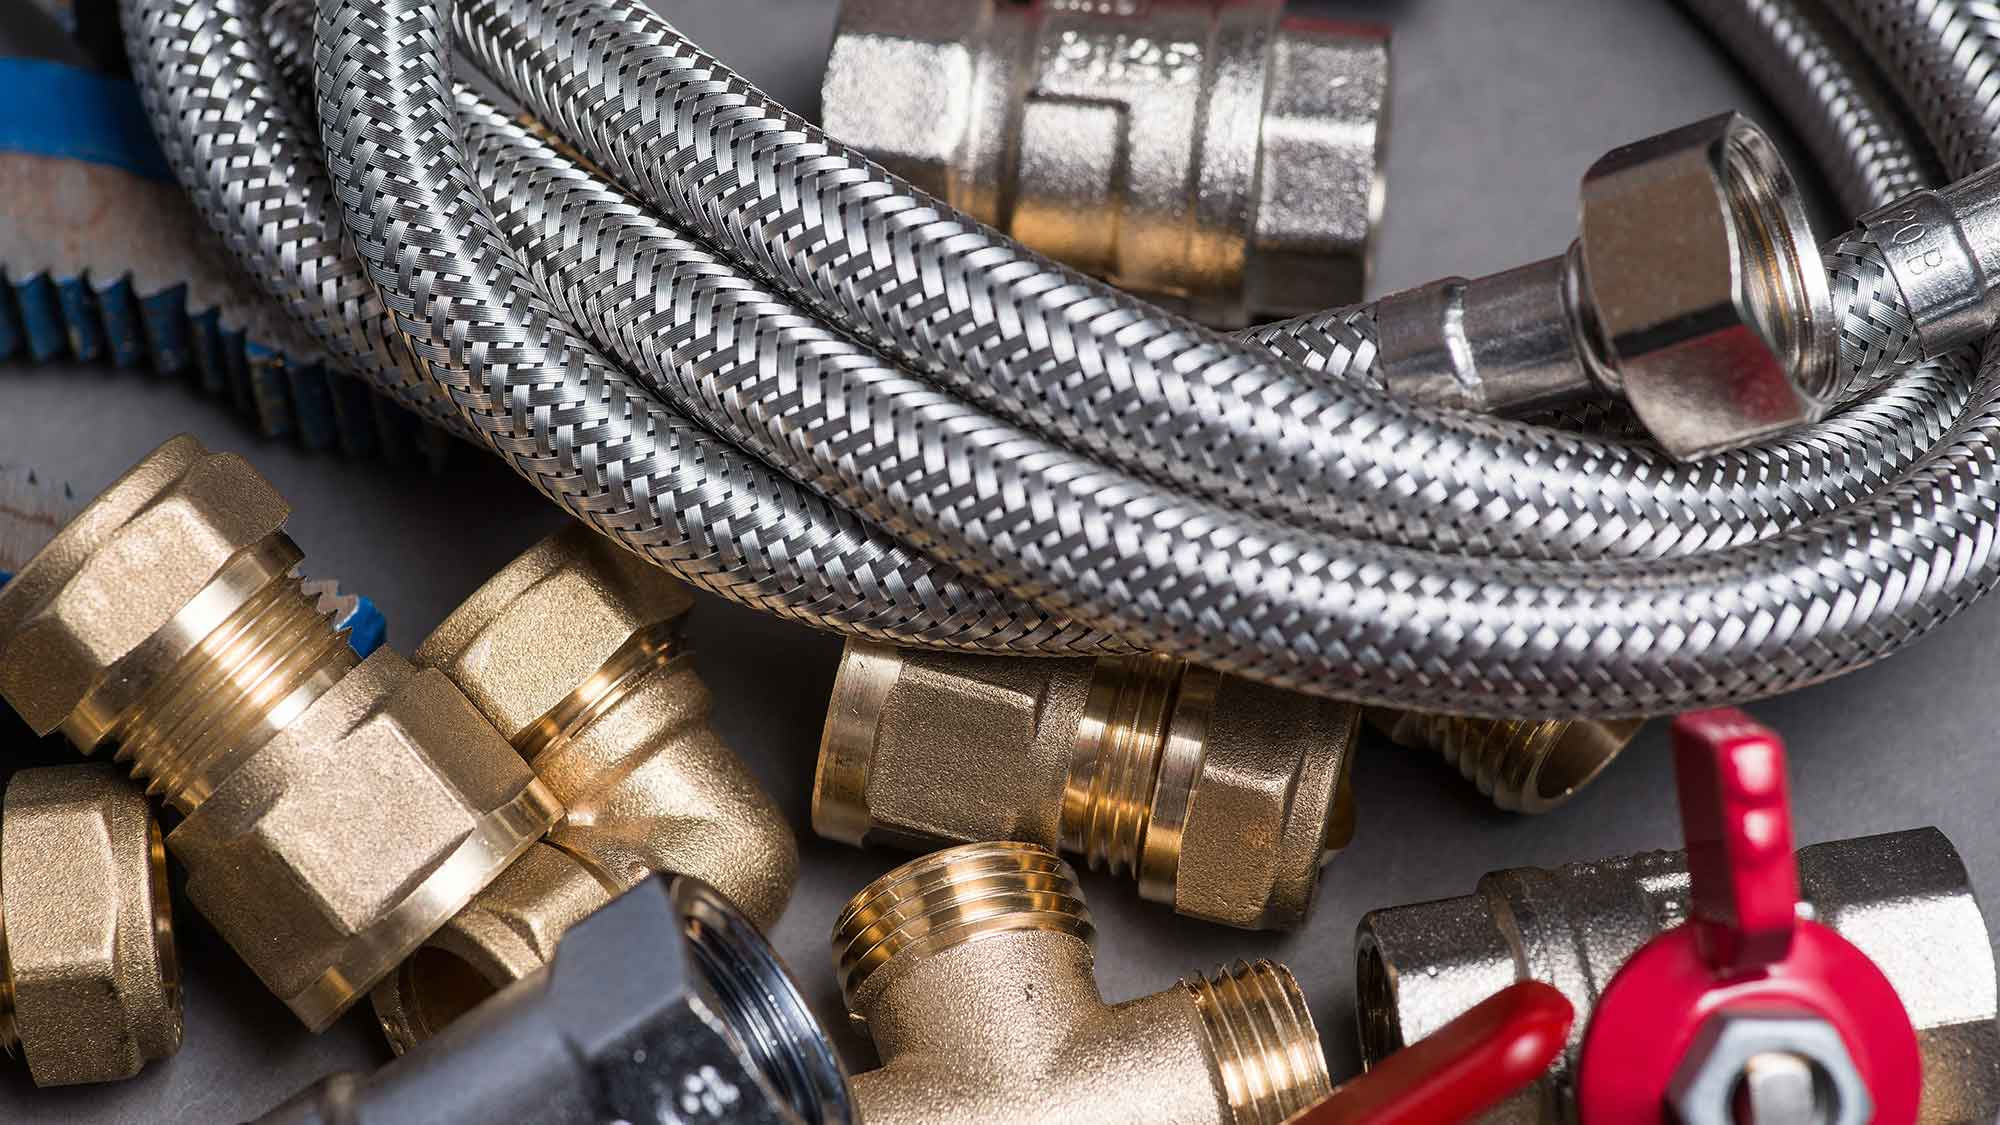 accredited plumbing heating services essex maintenance leigh on sea components